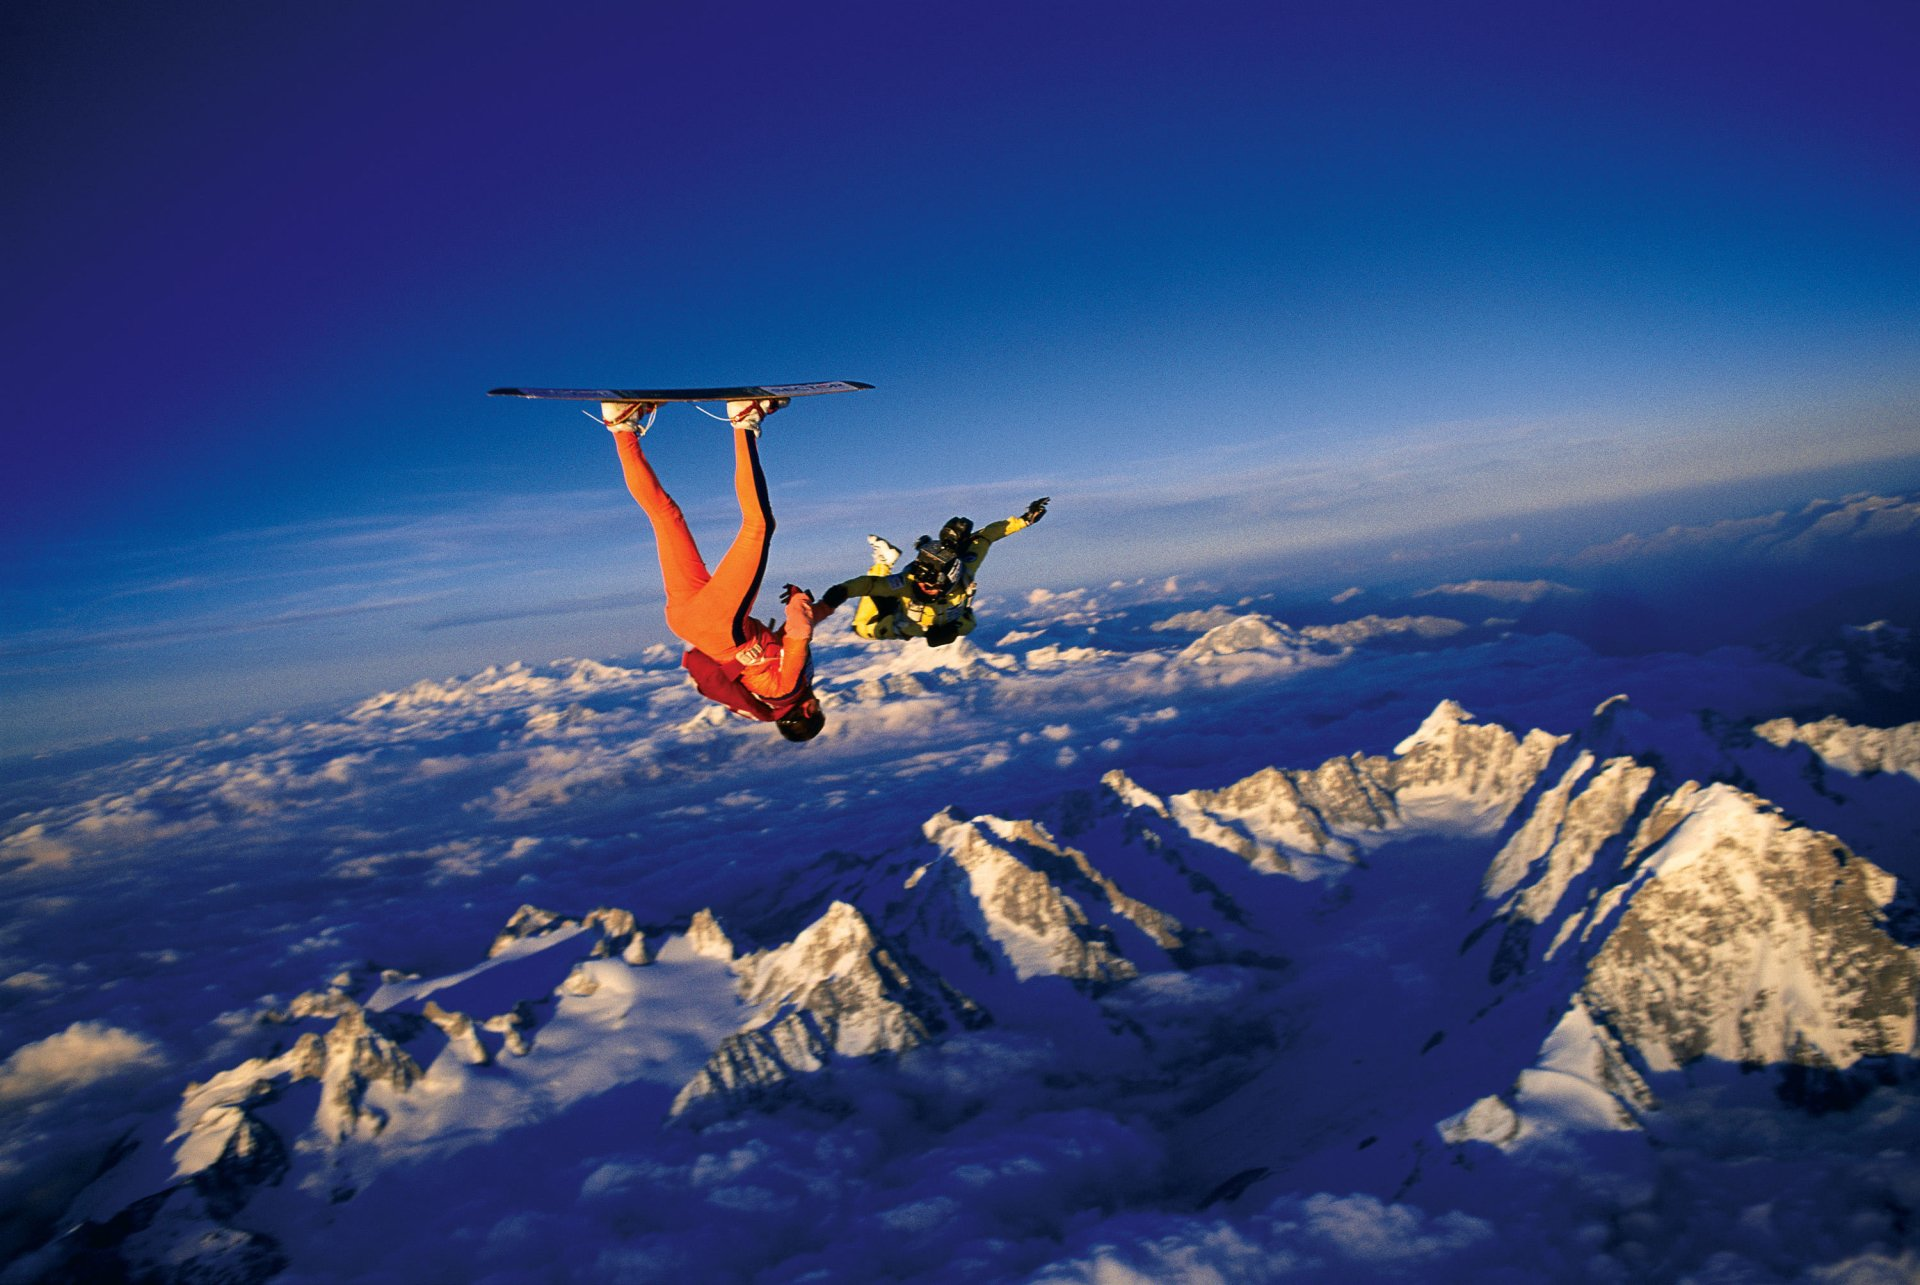 Sports - Skydiving  Parachuting Mountain Horizon Wallpaper